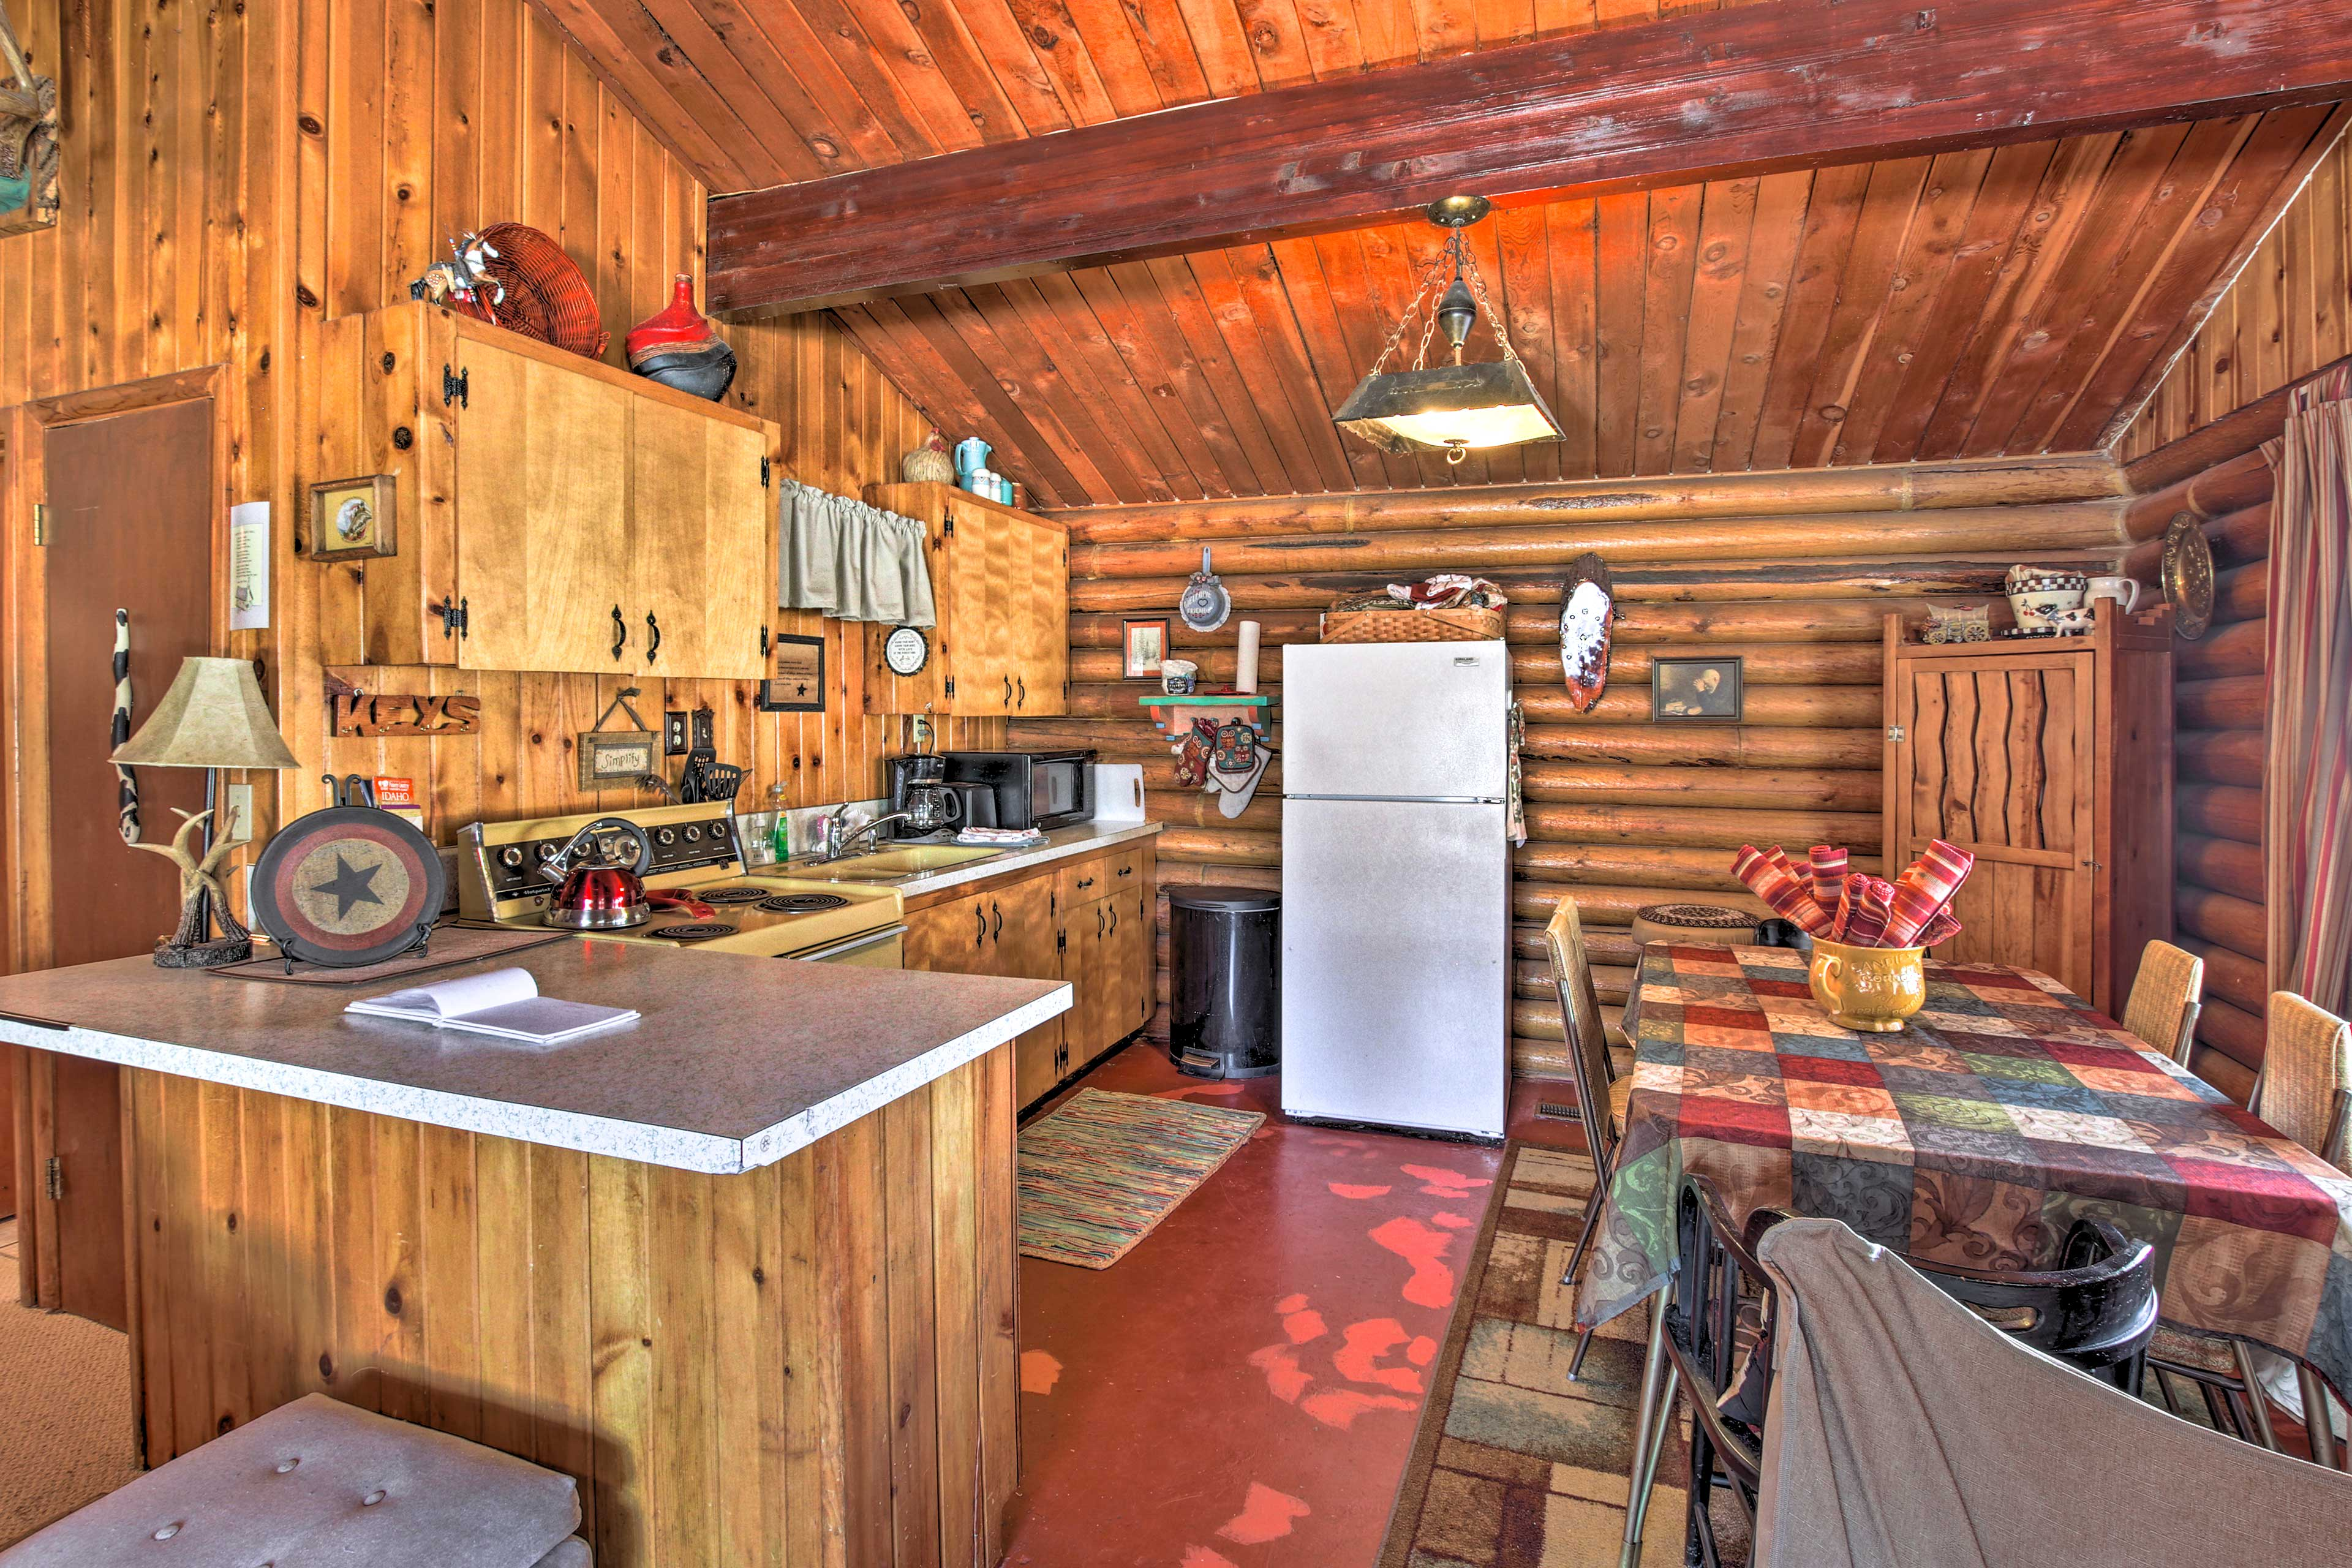 This vacation rental cabin has everything you need!